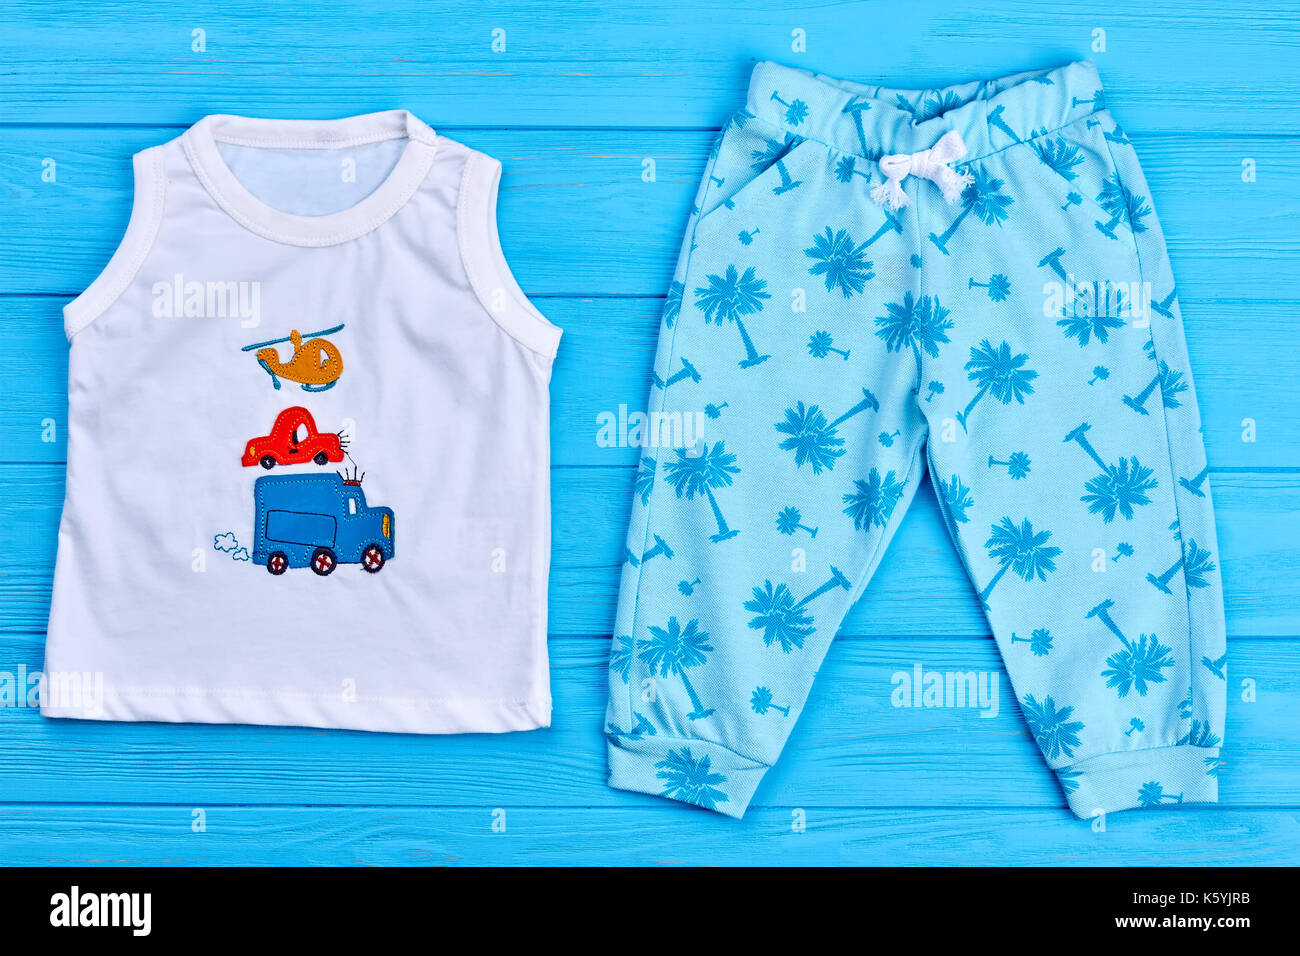 21b0dc9a7c25 Unisex baby summer outfit. New childs apparel on sale. Children cute summer  garment on blue wooden background.